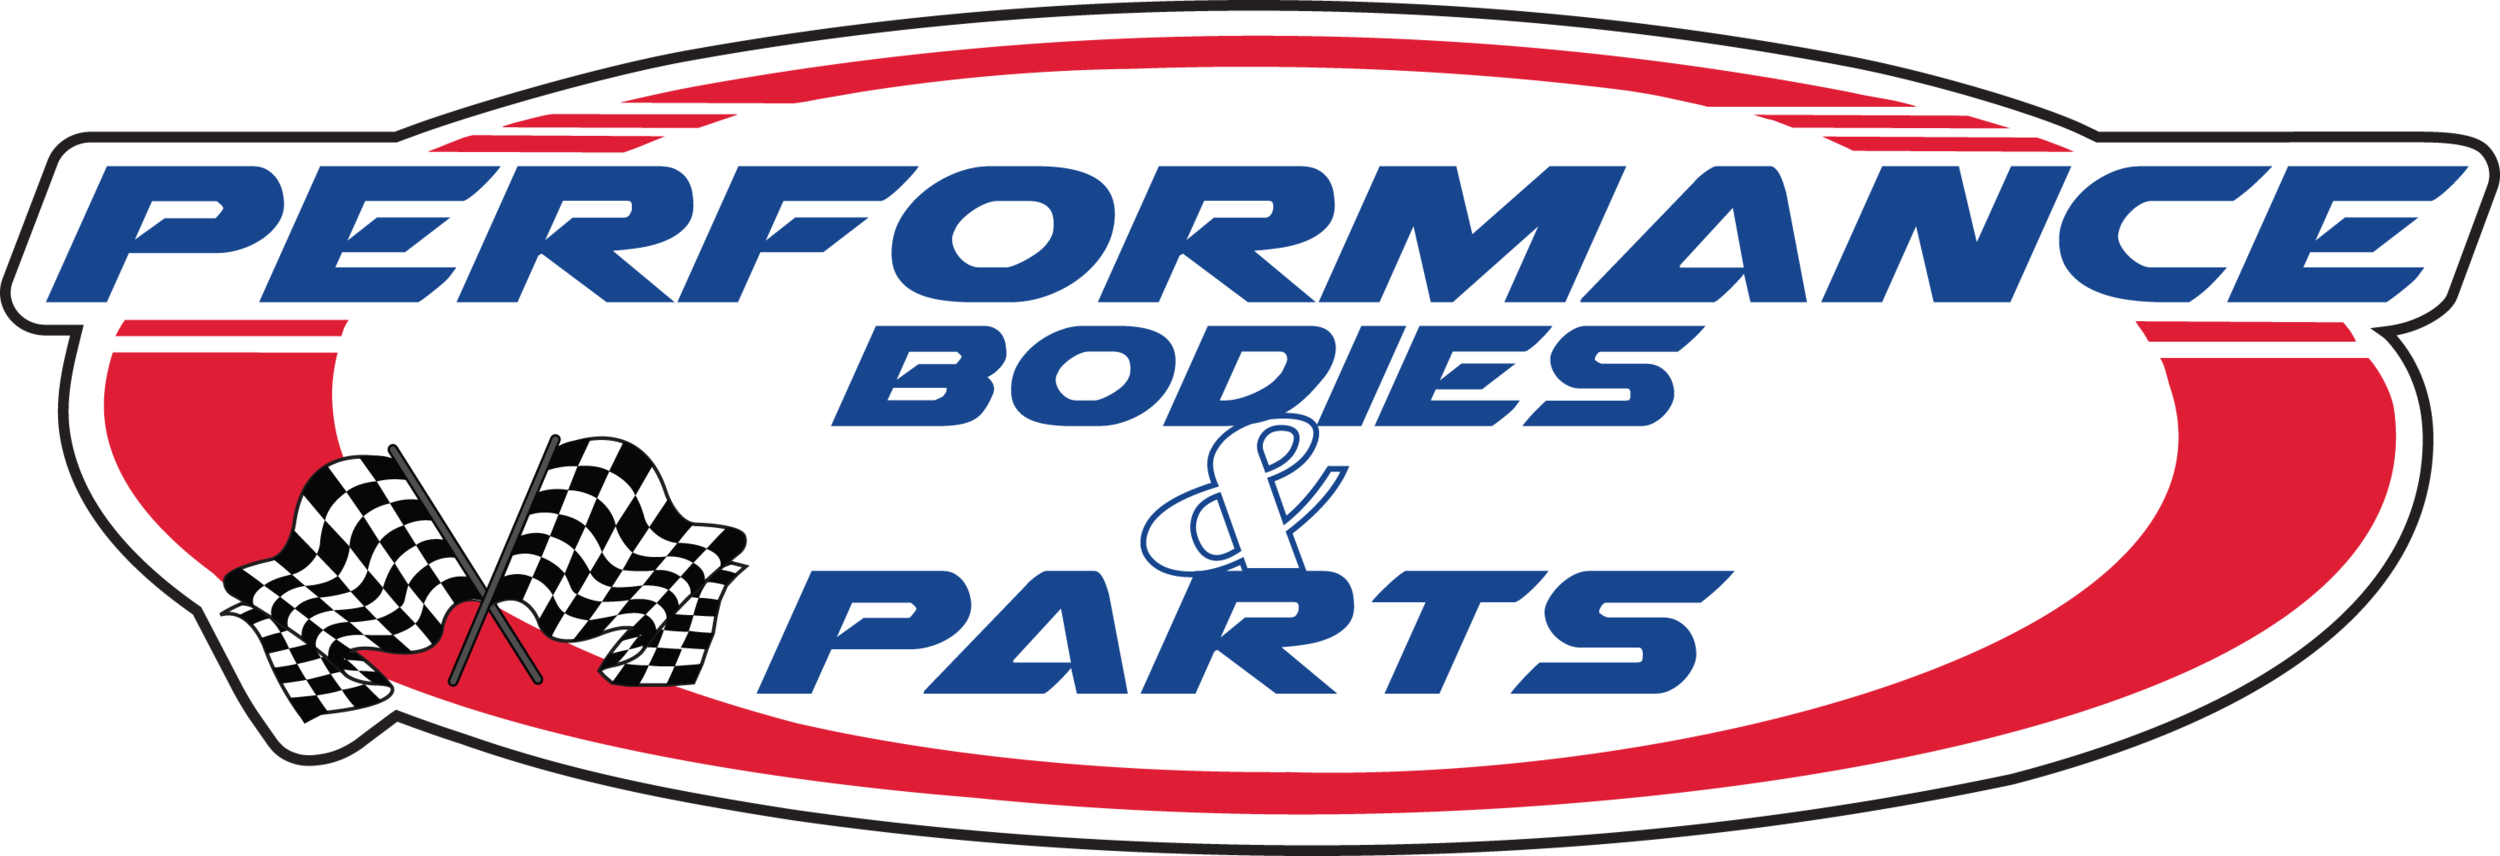 Performance Bodies logo 2017.png